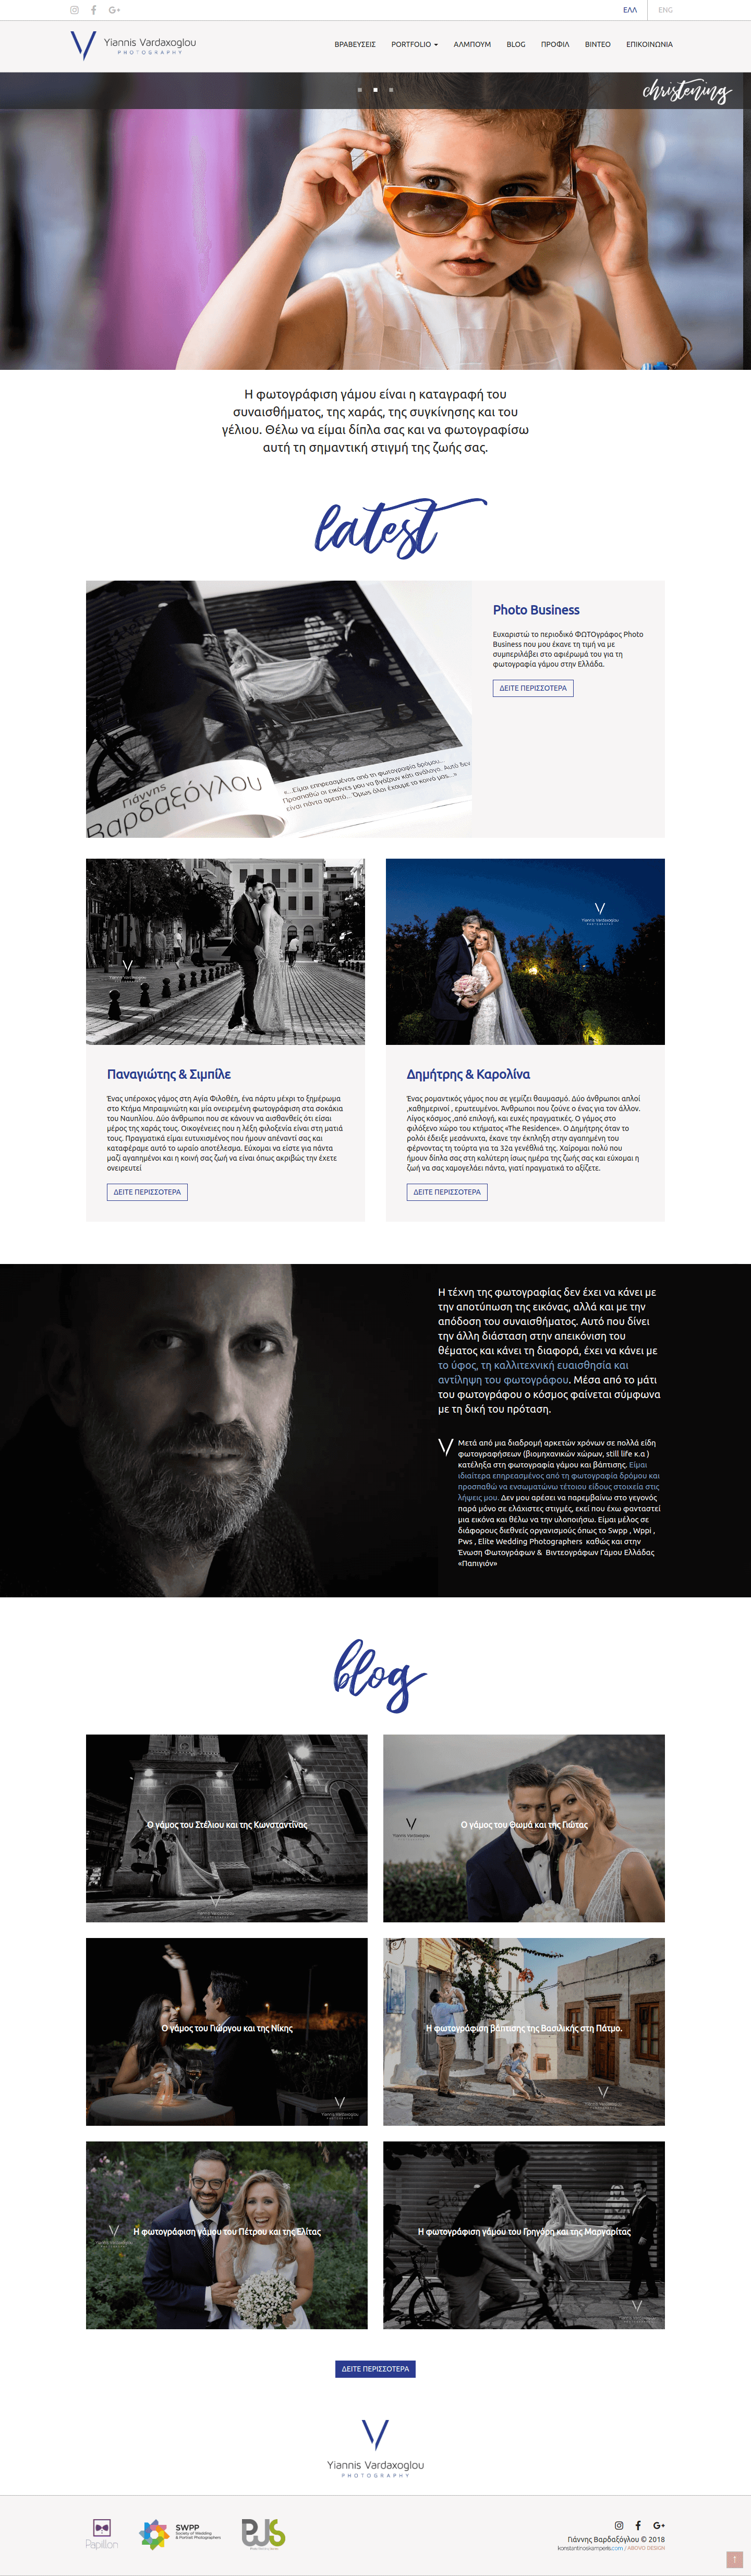 Home page of Yiannis Vardaxoglou site